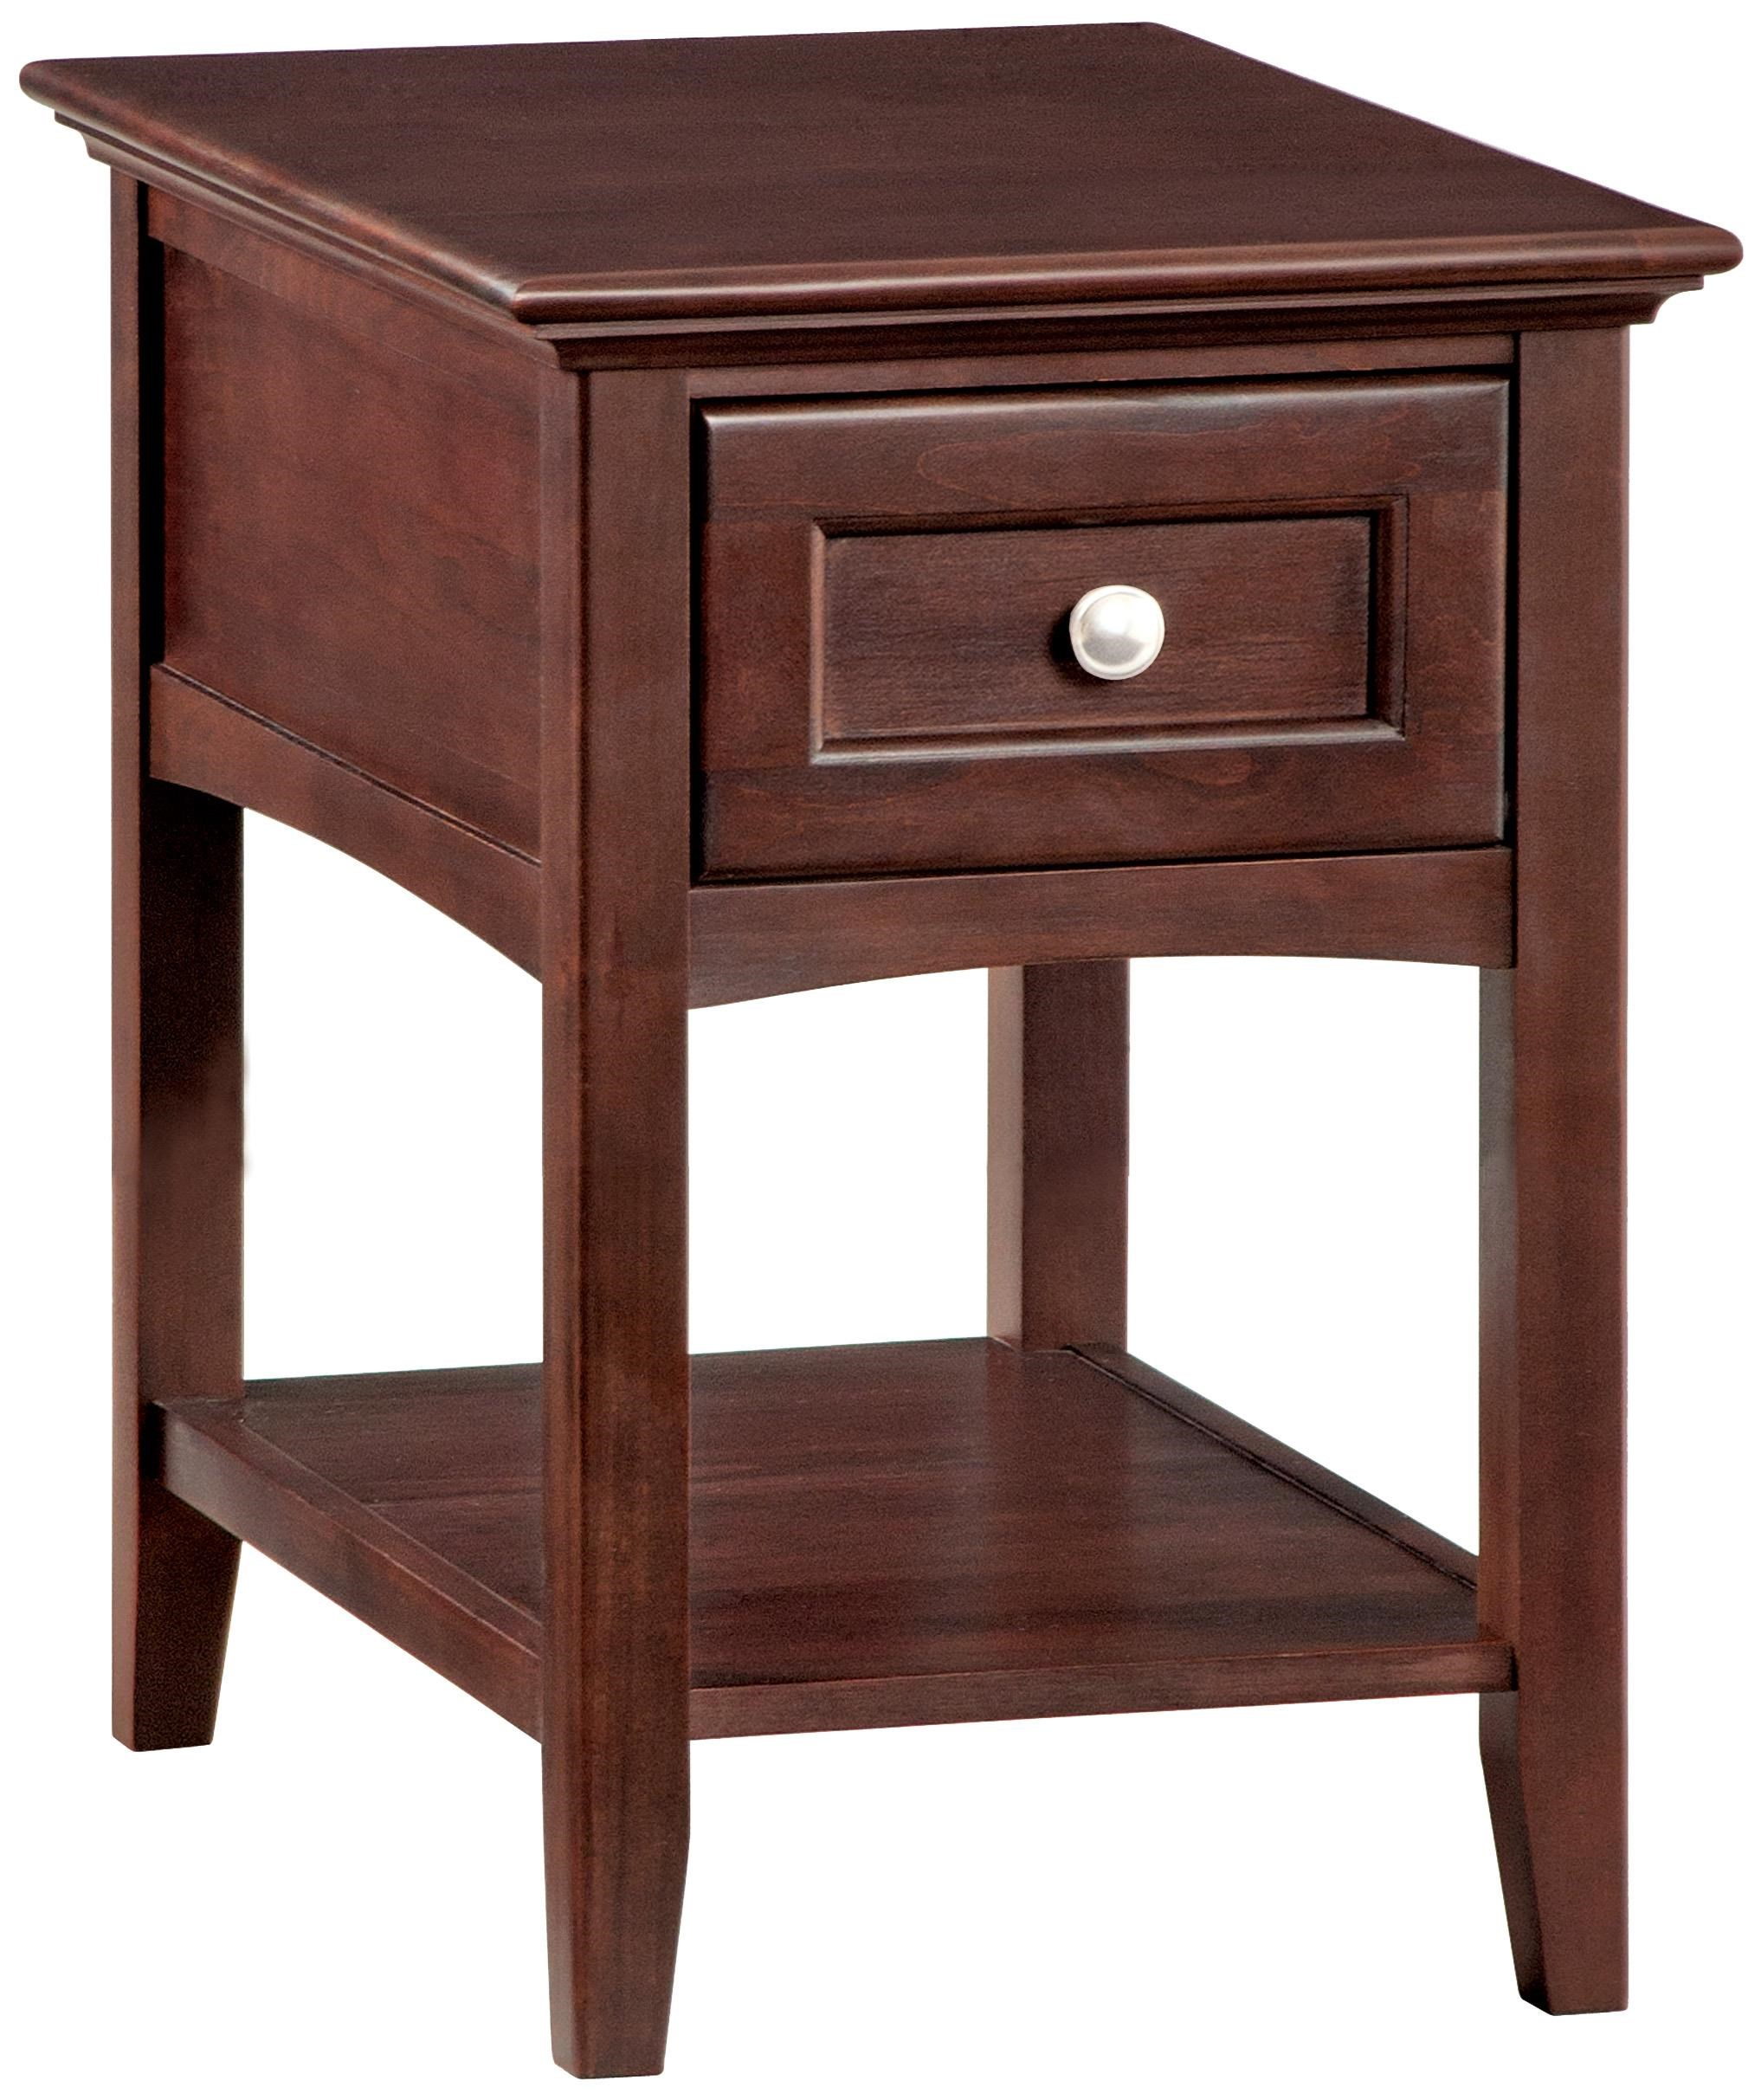 McKenzie Chairside Table by Whittier Wood at Crowley Furniture & Mattress